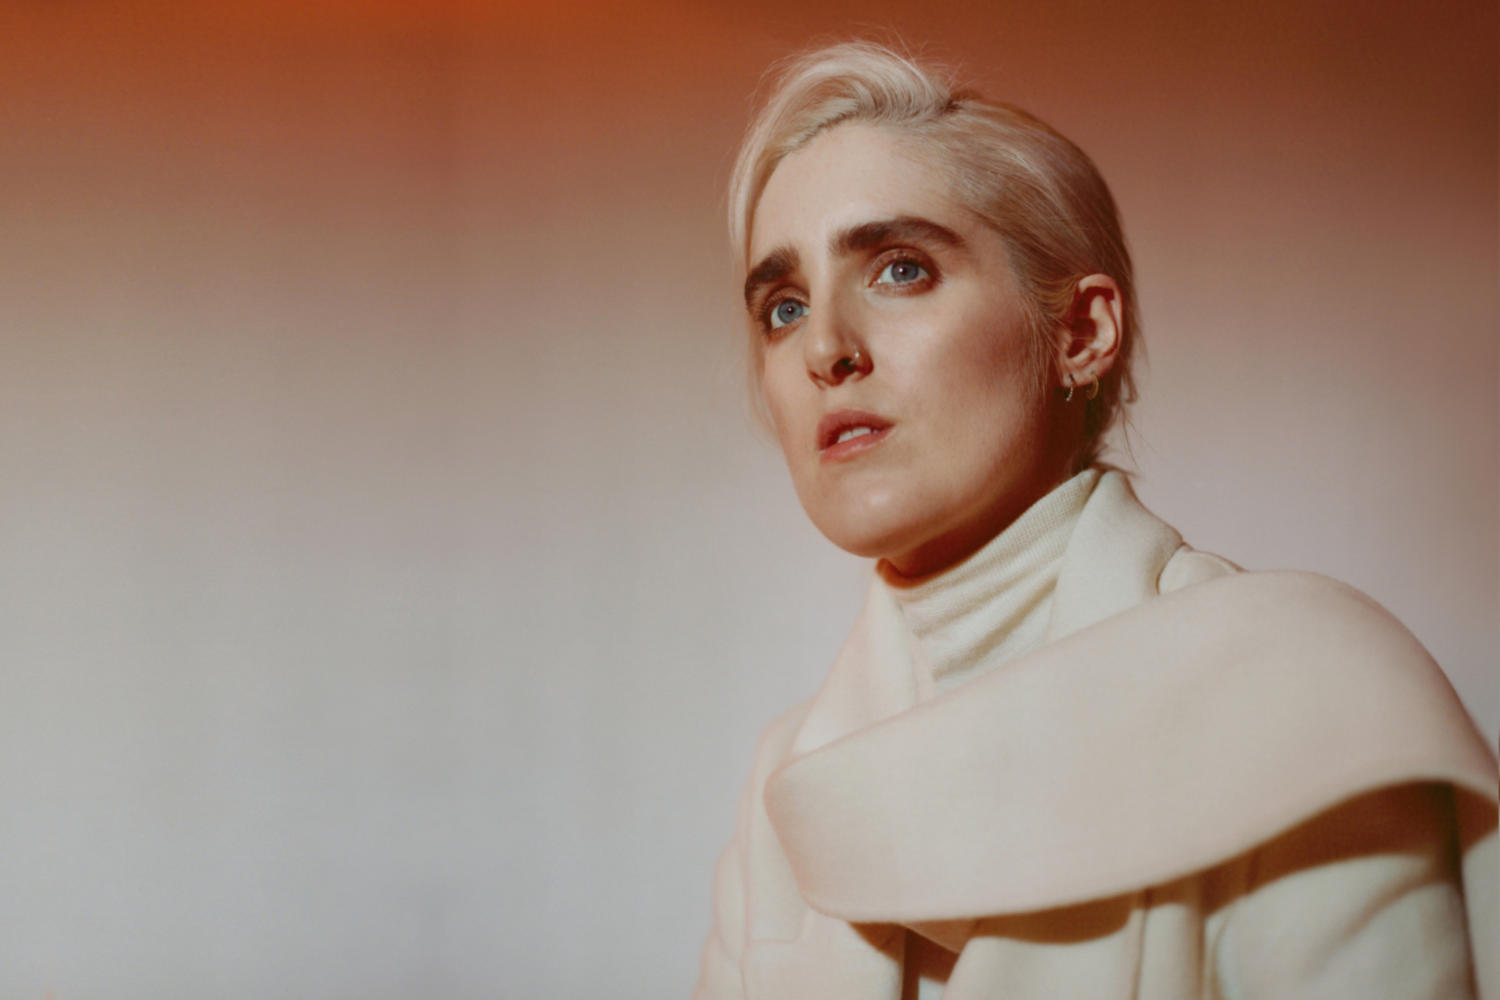 Swipe Right with Shura